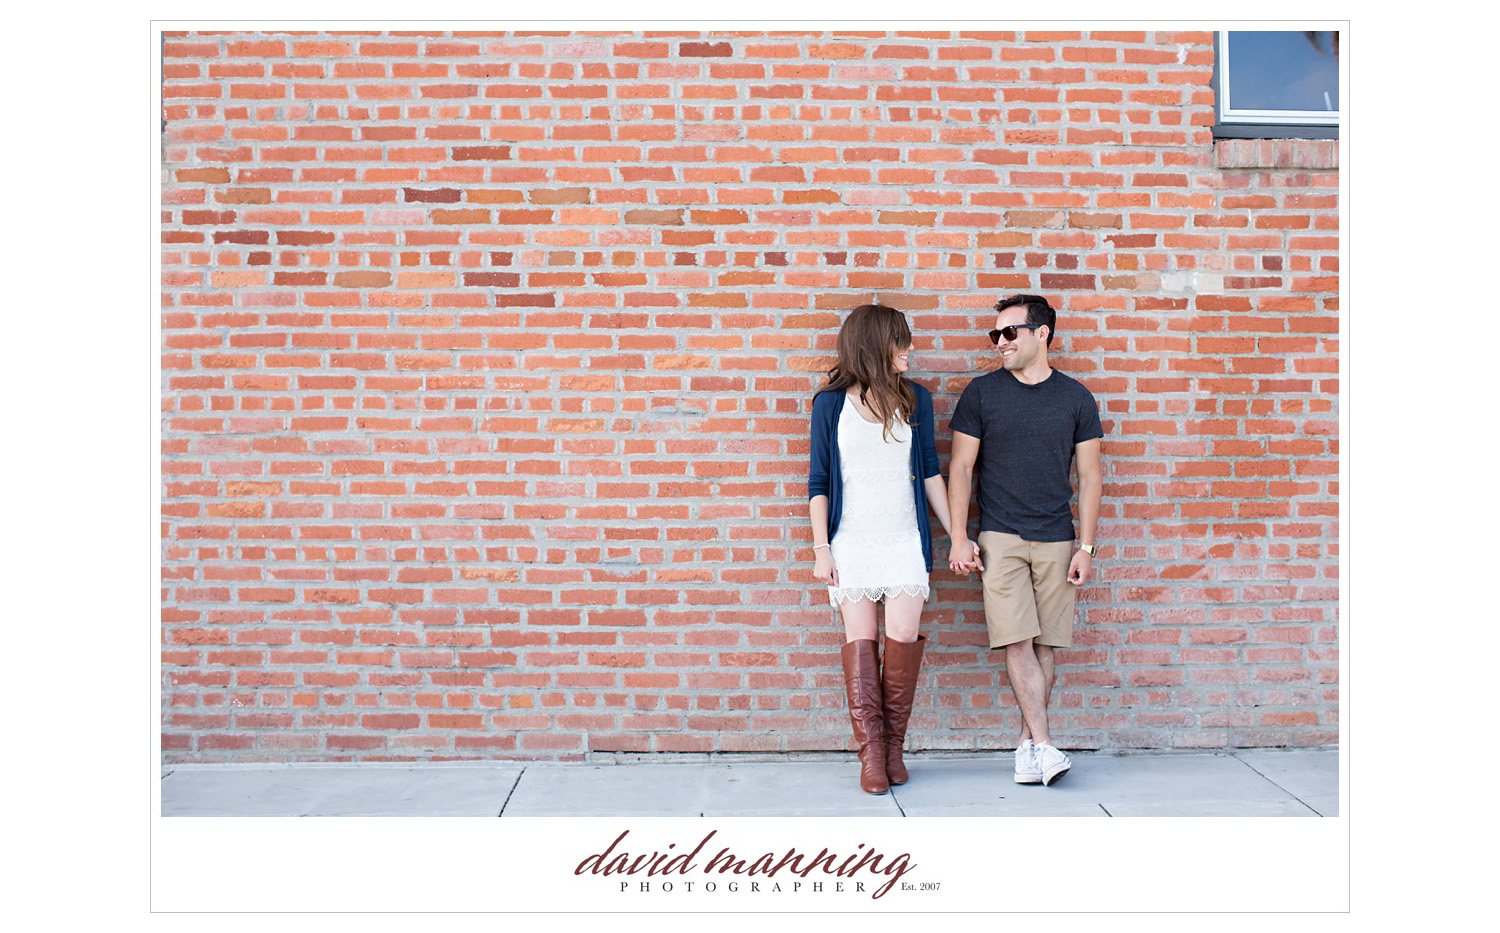 Encinitas-Engagement-Photos-San-Diego-David-Manning_0001.jpg